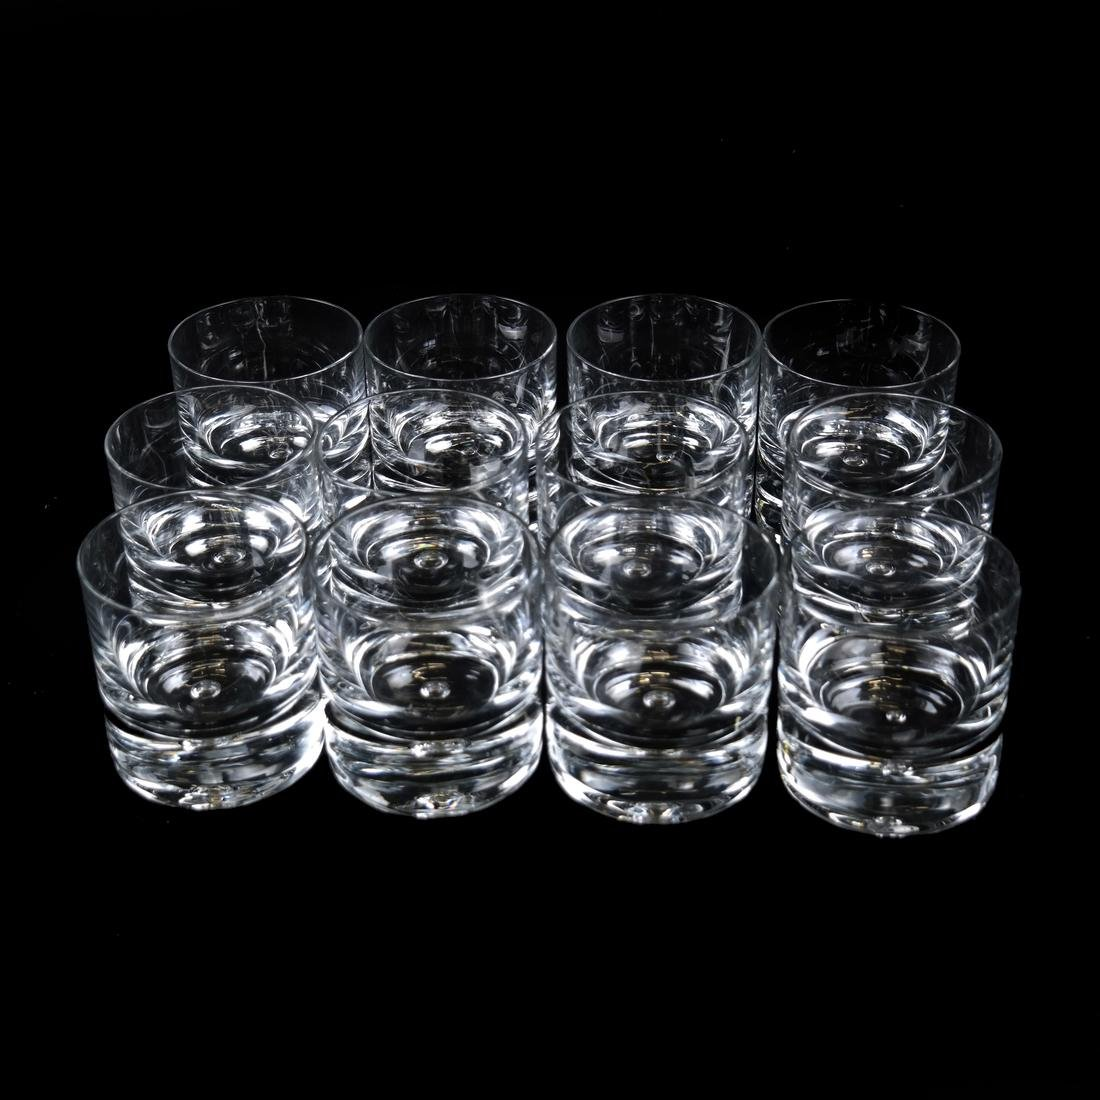 Twelve Steuben-manner Rocks Glasses